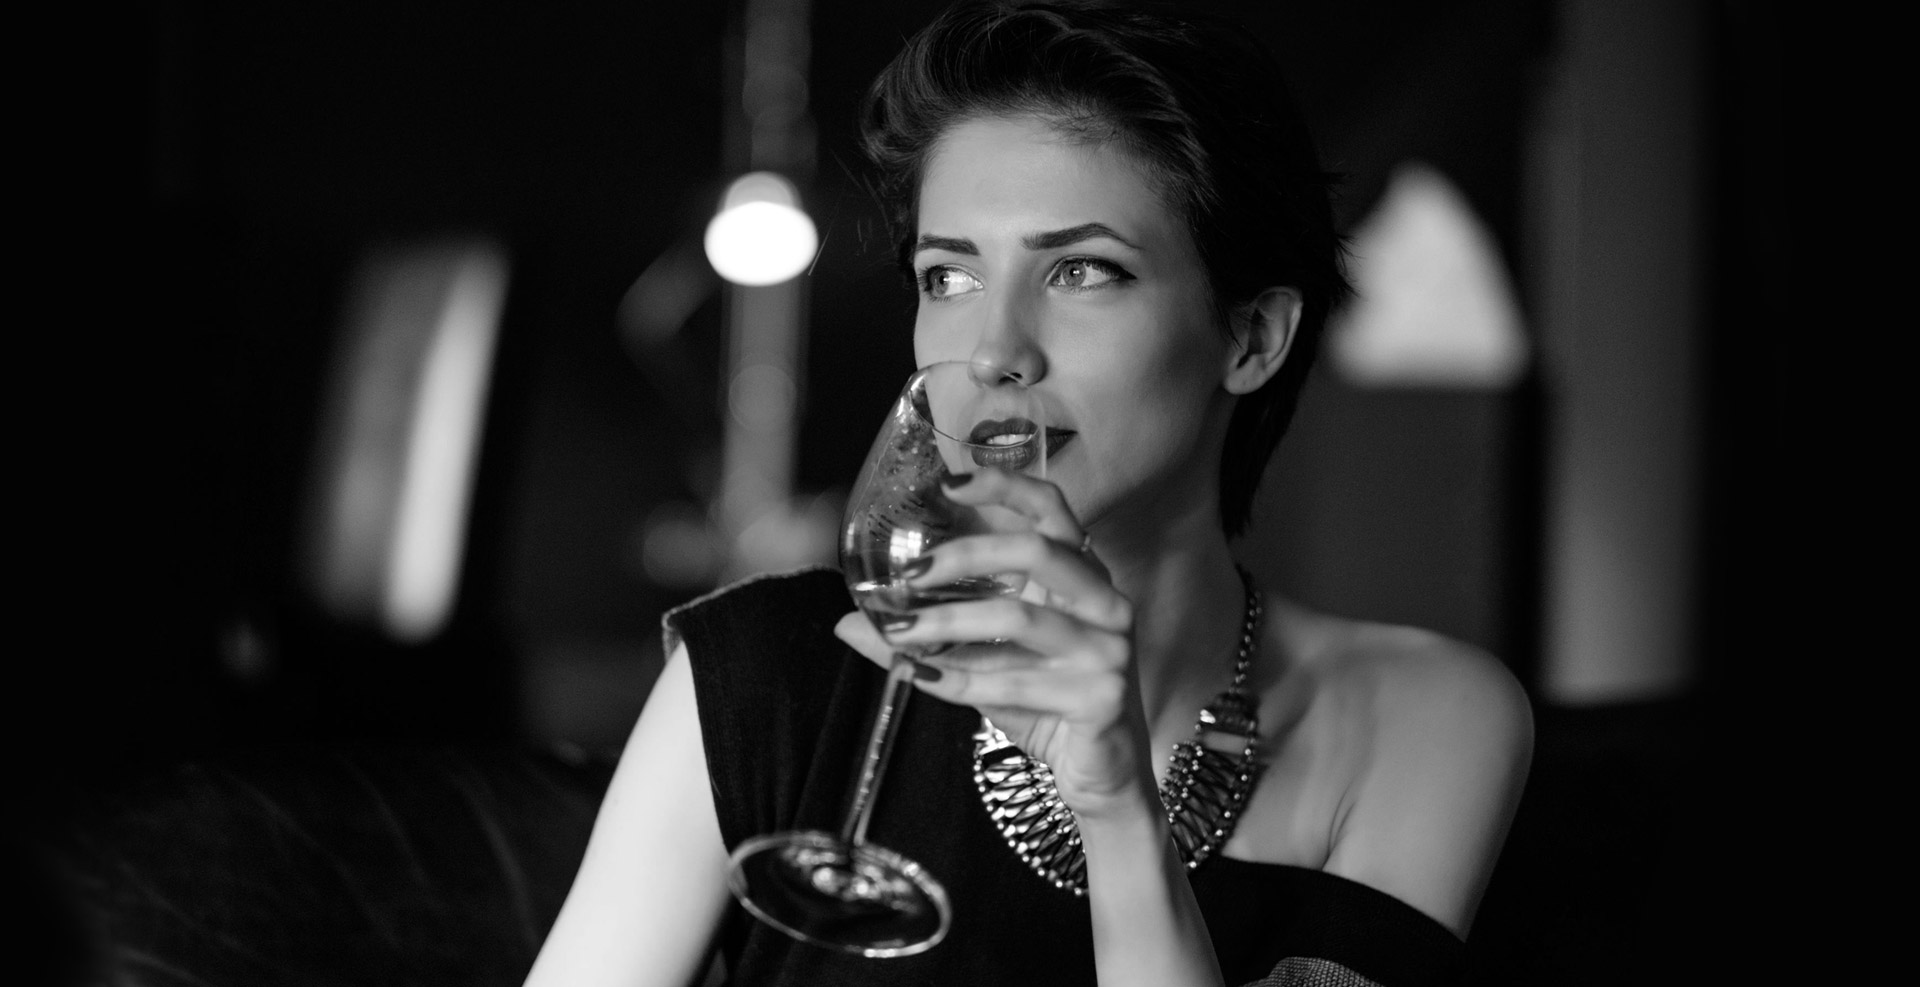 Woman sipping wine from glass